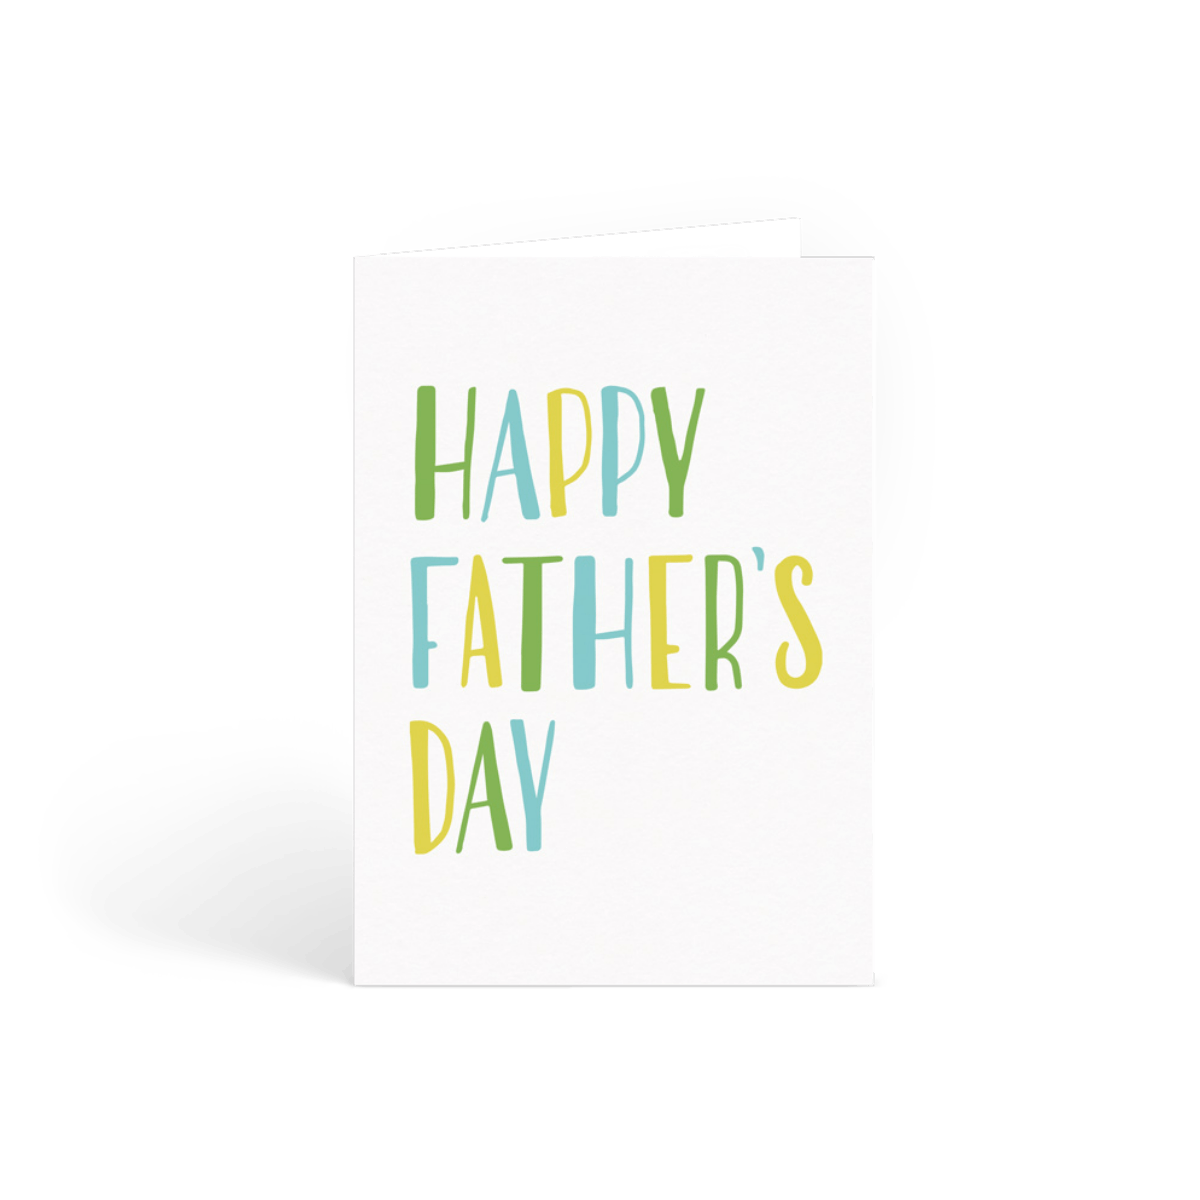 Https%3a%2f%2fwww.papier.com%2fproduct image%2f17927%2f2%2fhappy father s day 4676 avant 1486650487.png?ixlib=rb 1.1